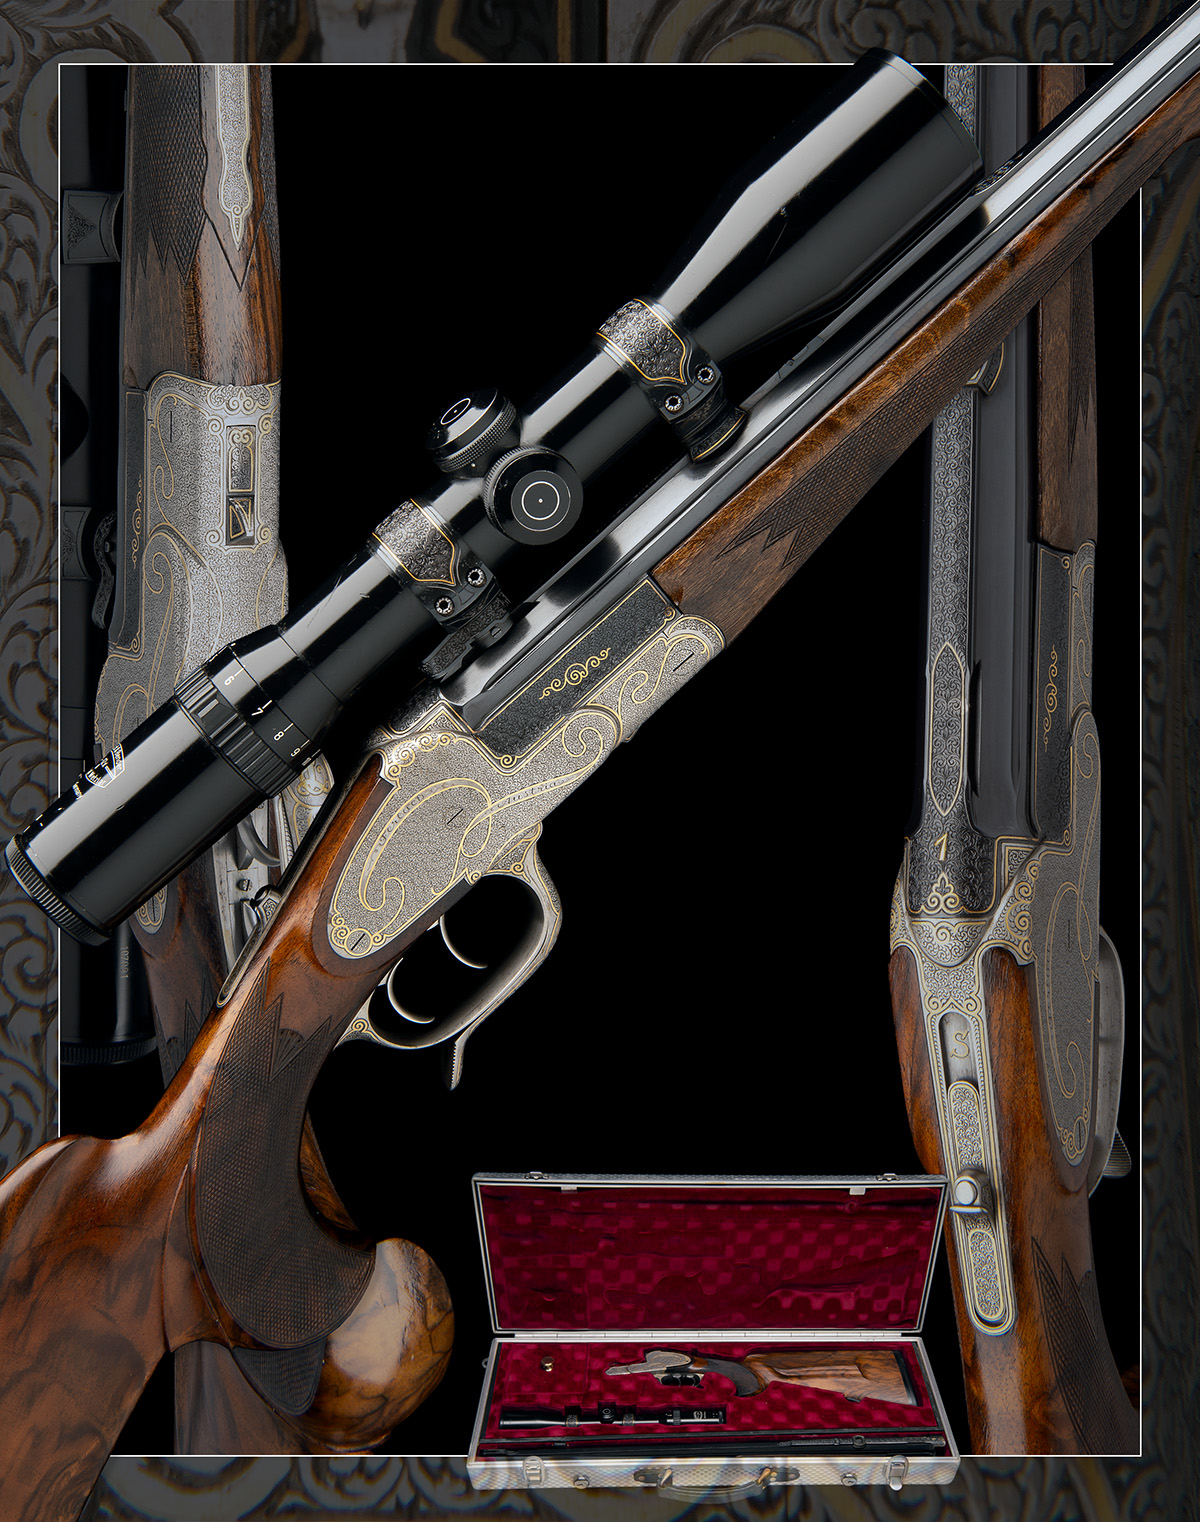 H. SCHEIRING A .300 WIN. MAG. JAEGER PATENT SINGLE-BARRELLED SIDEPLATED PUSH-FORWARD UNDERLEVER - Image 13 of 13